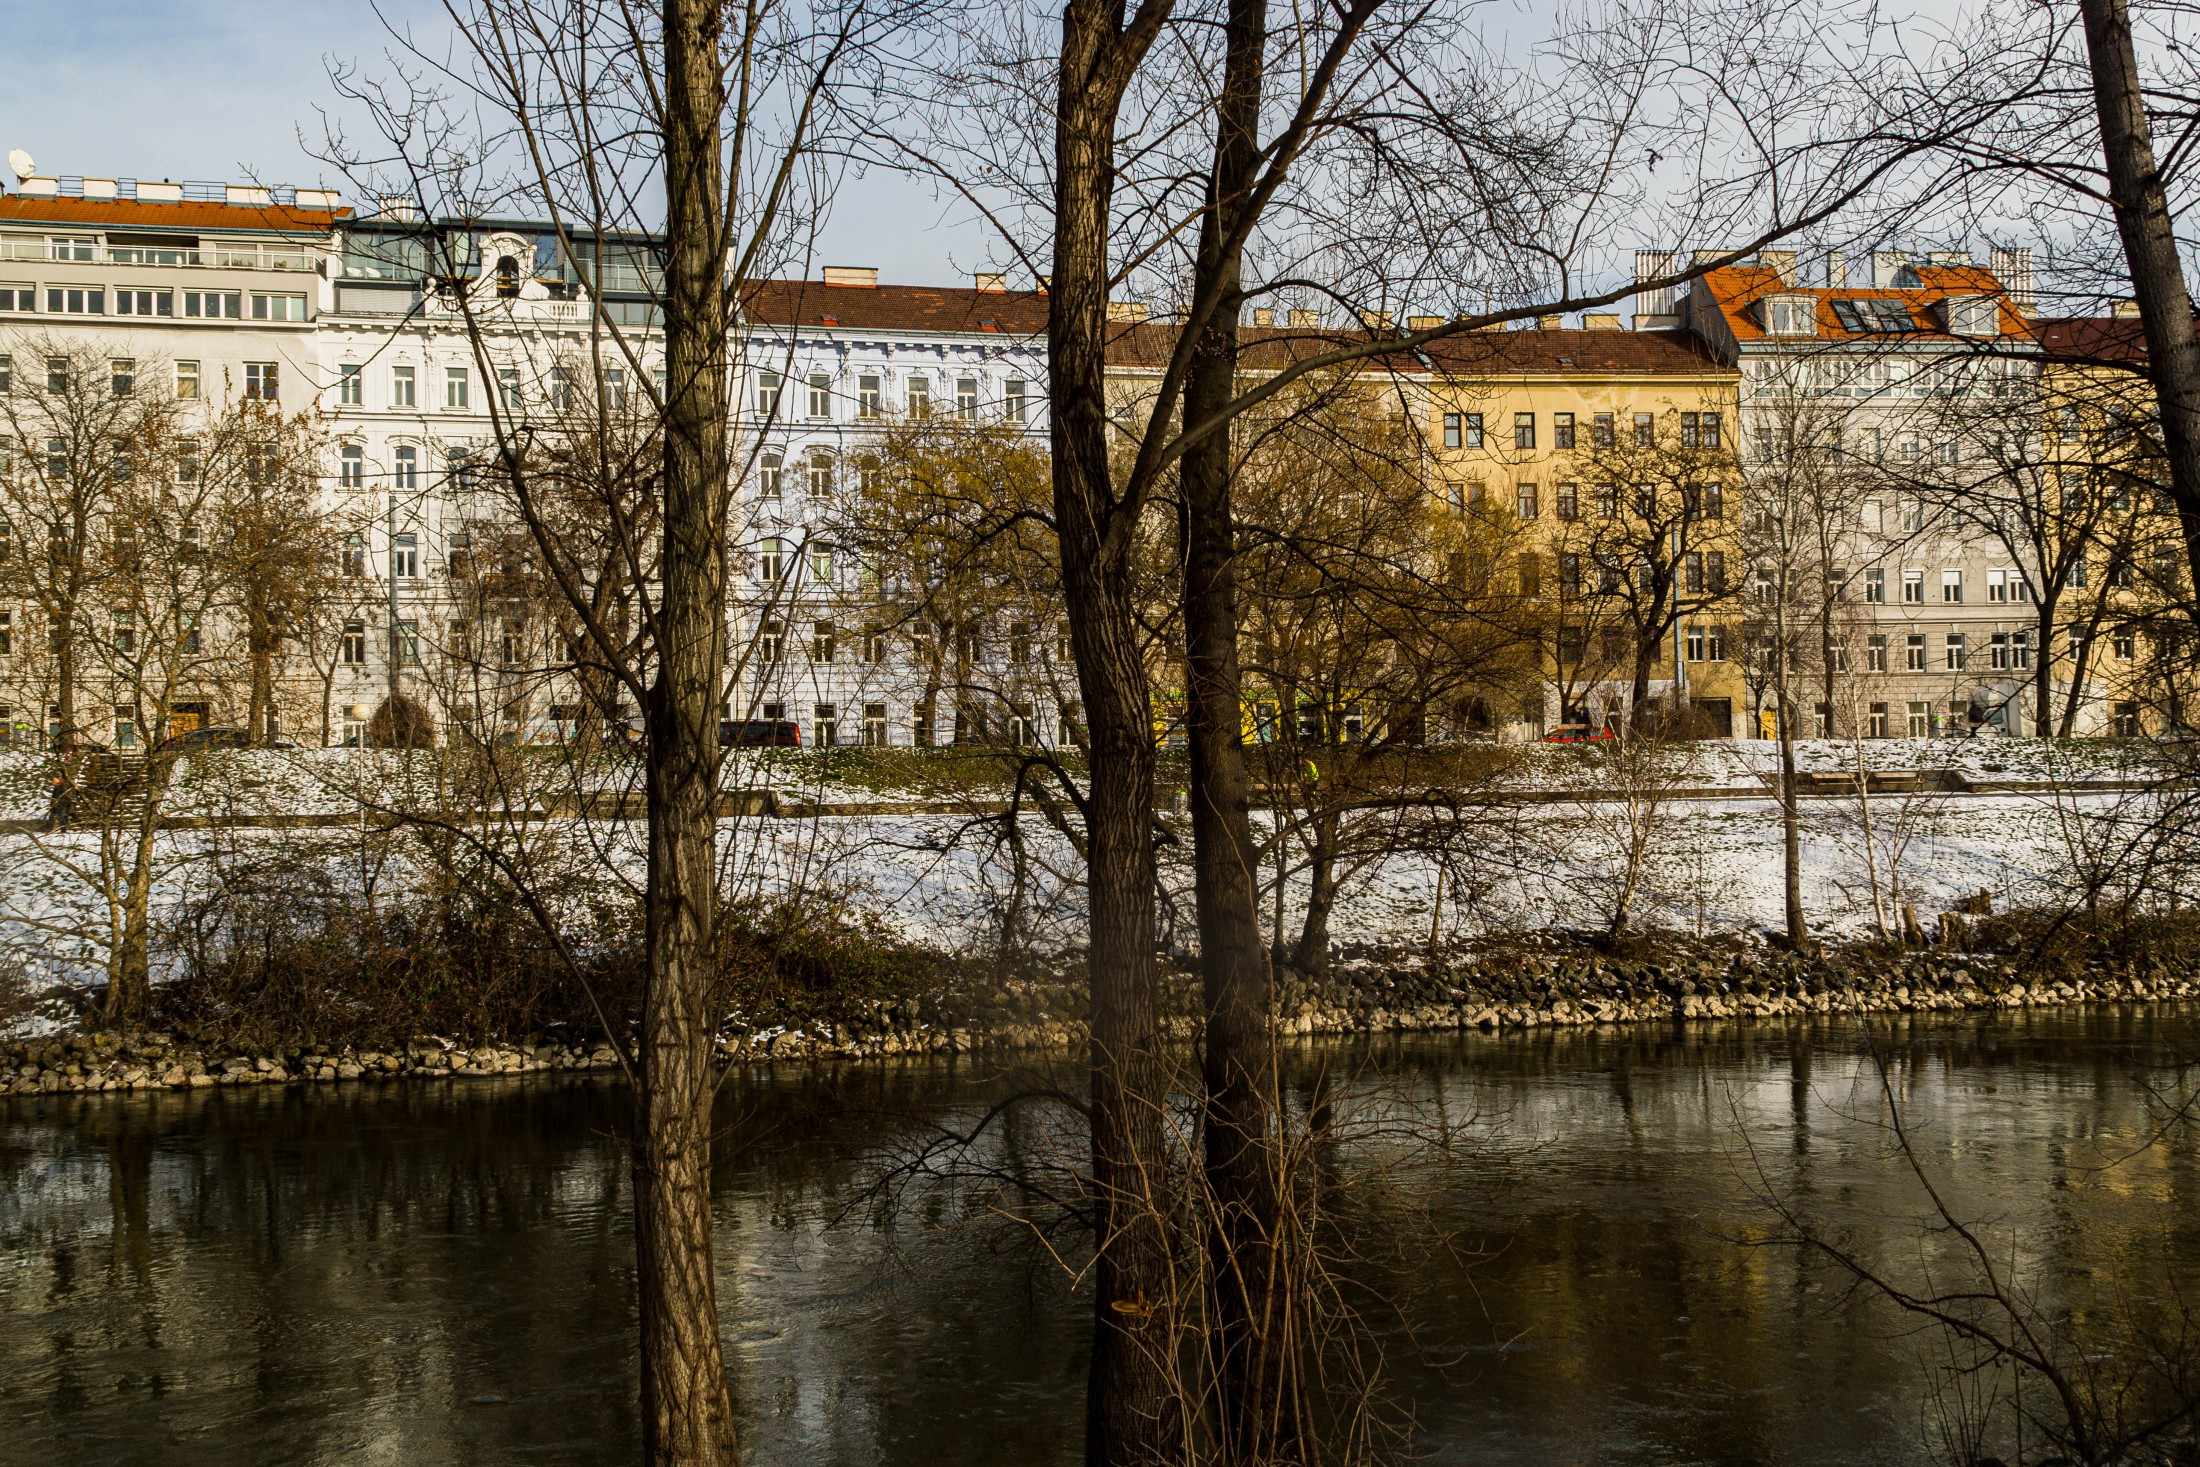 Flowing Inspiration - Danube river in Vienna